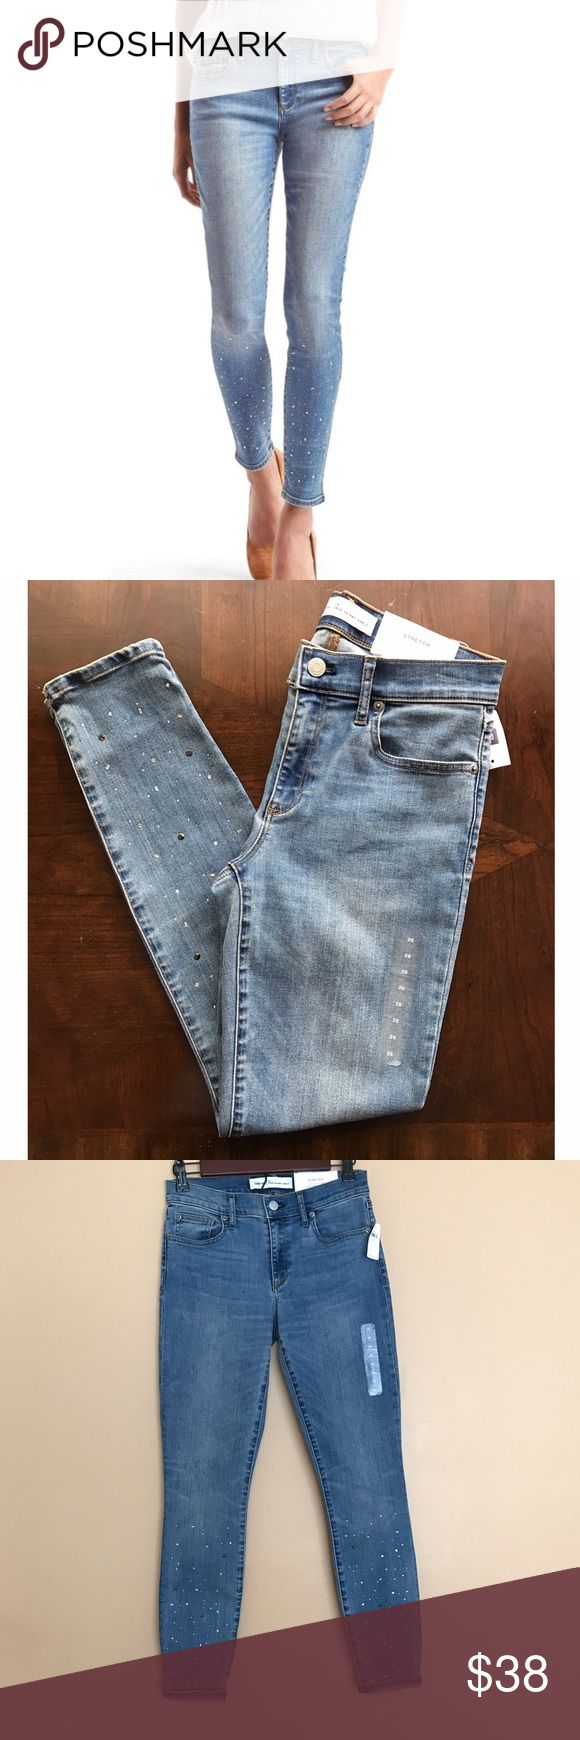 "Gem Studded True Skinny Ankle Stretch Jeans Wash is light/medium. 37"" Long. 28.5"" Inseam. 10.5"" Foot Hole opening (bottom). 29"" Waist.  Embellishment; front only. Brand new with tags. Retail $89.95 -Medium Stretch Fabric designed to define your shape. Mid Rise.  -Slim through hip and thigh. -Skinny Leg, Skims the Ankle. GAP Jeans Skinny"